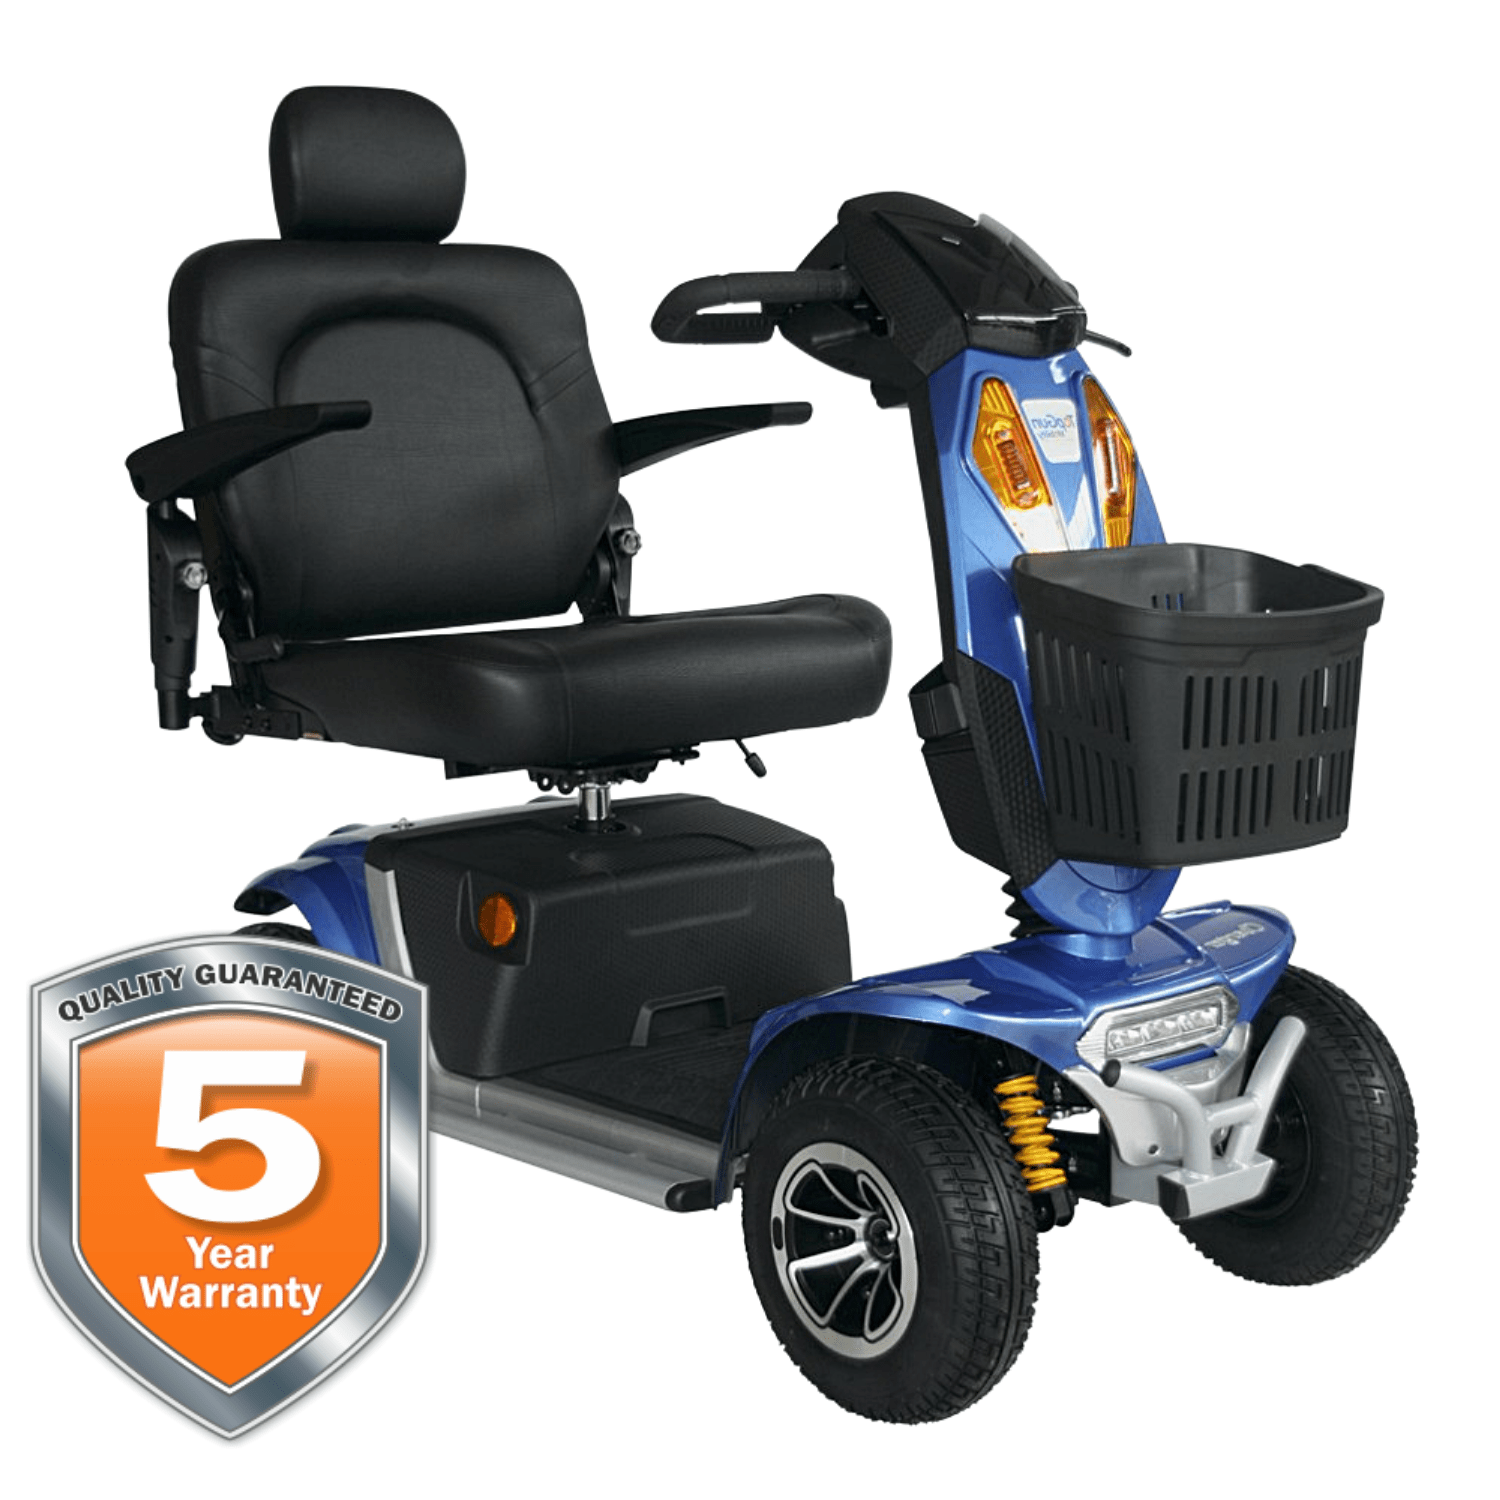 Top Gun Charger Mobility Scooter – Product Image